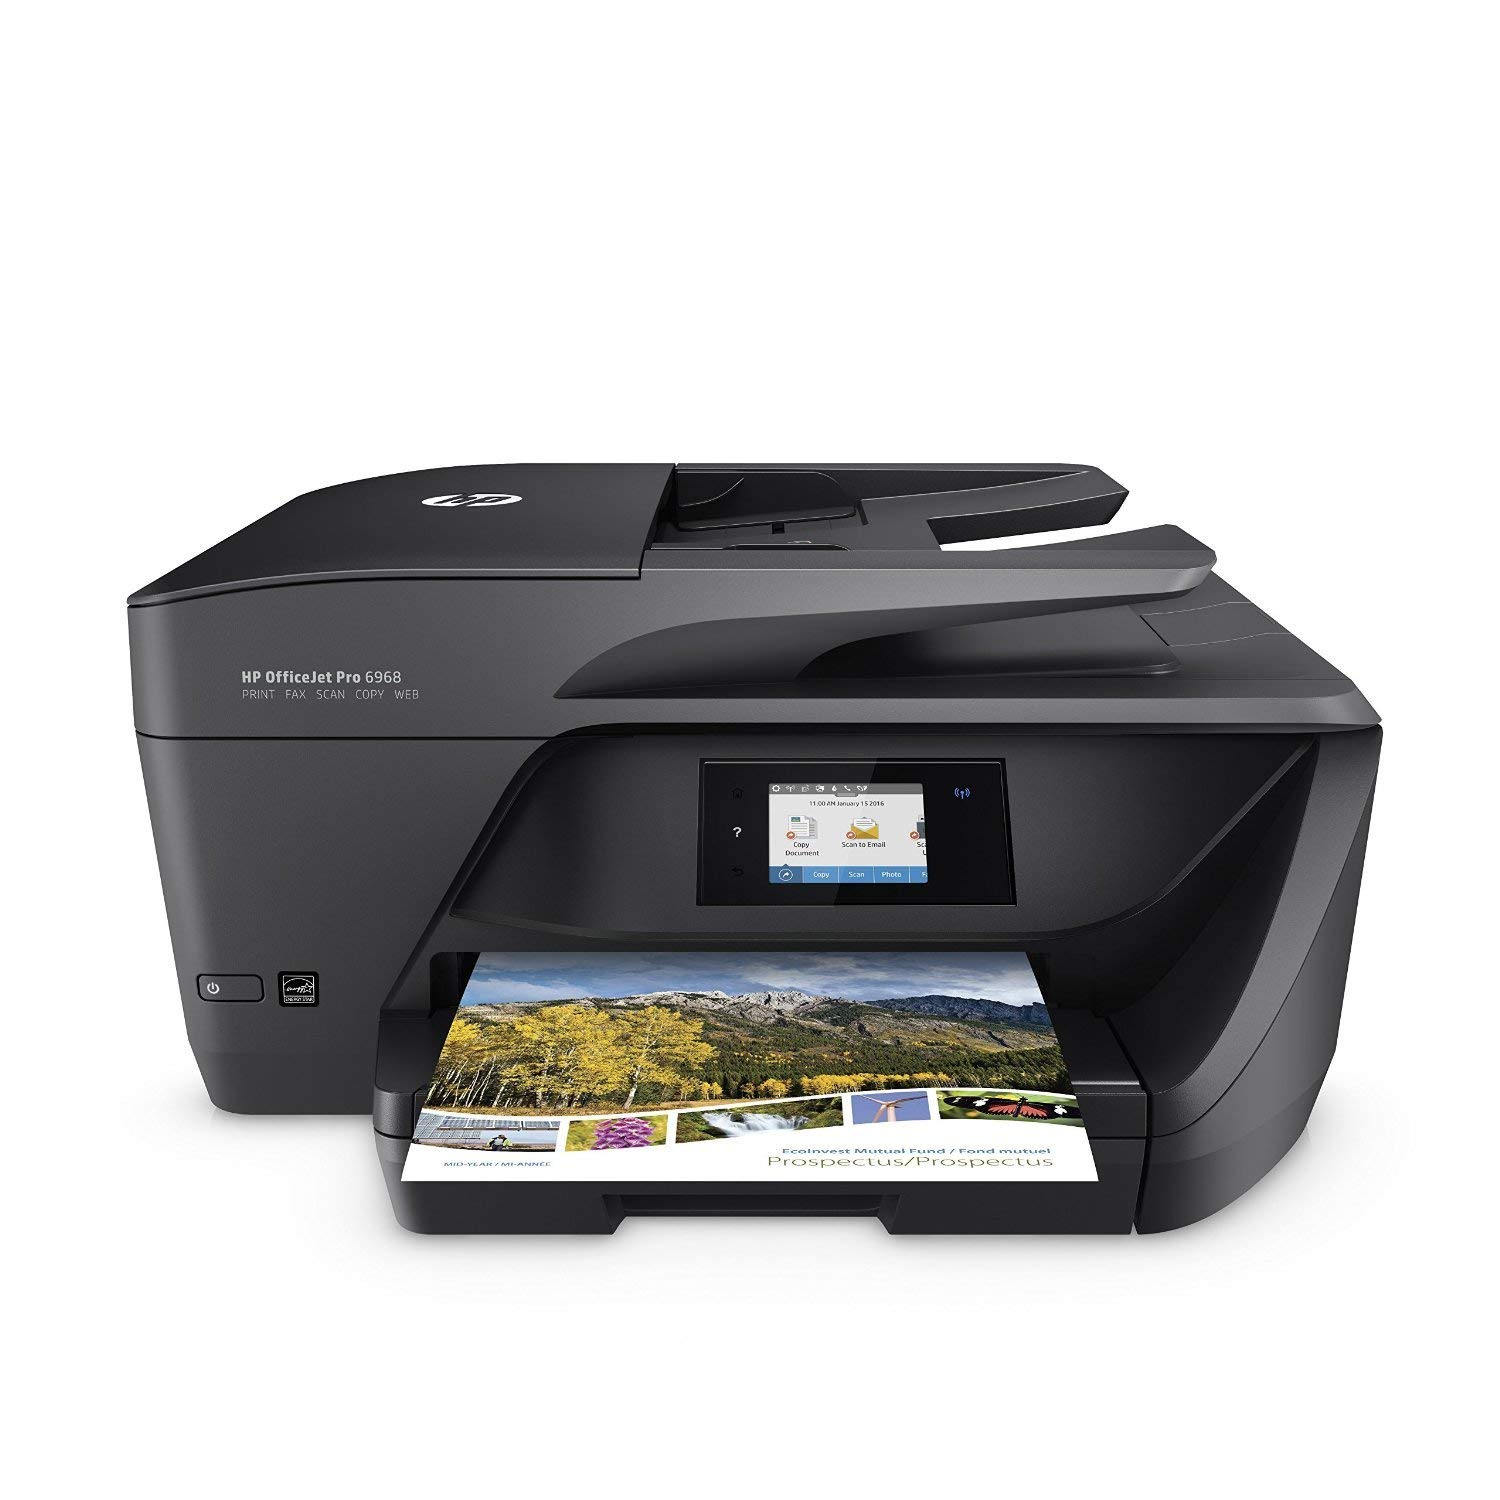 HP OfficeJet Pro 6968 All-in-One Wireless Printer with Mobile Printing, Instant Ink ready (T0F28A) (Renewed)